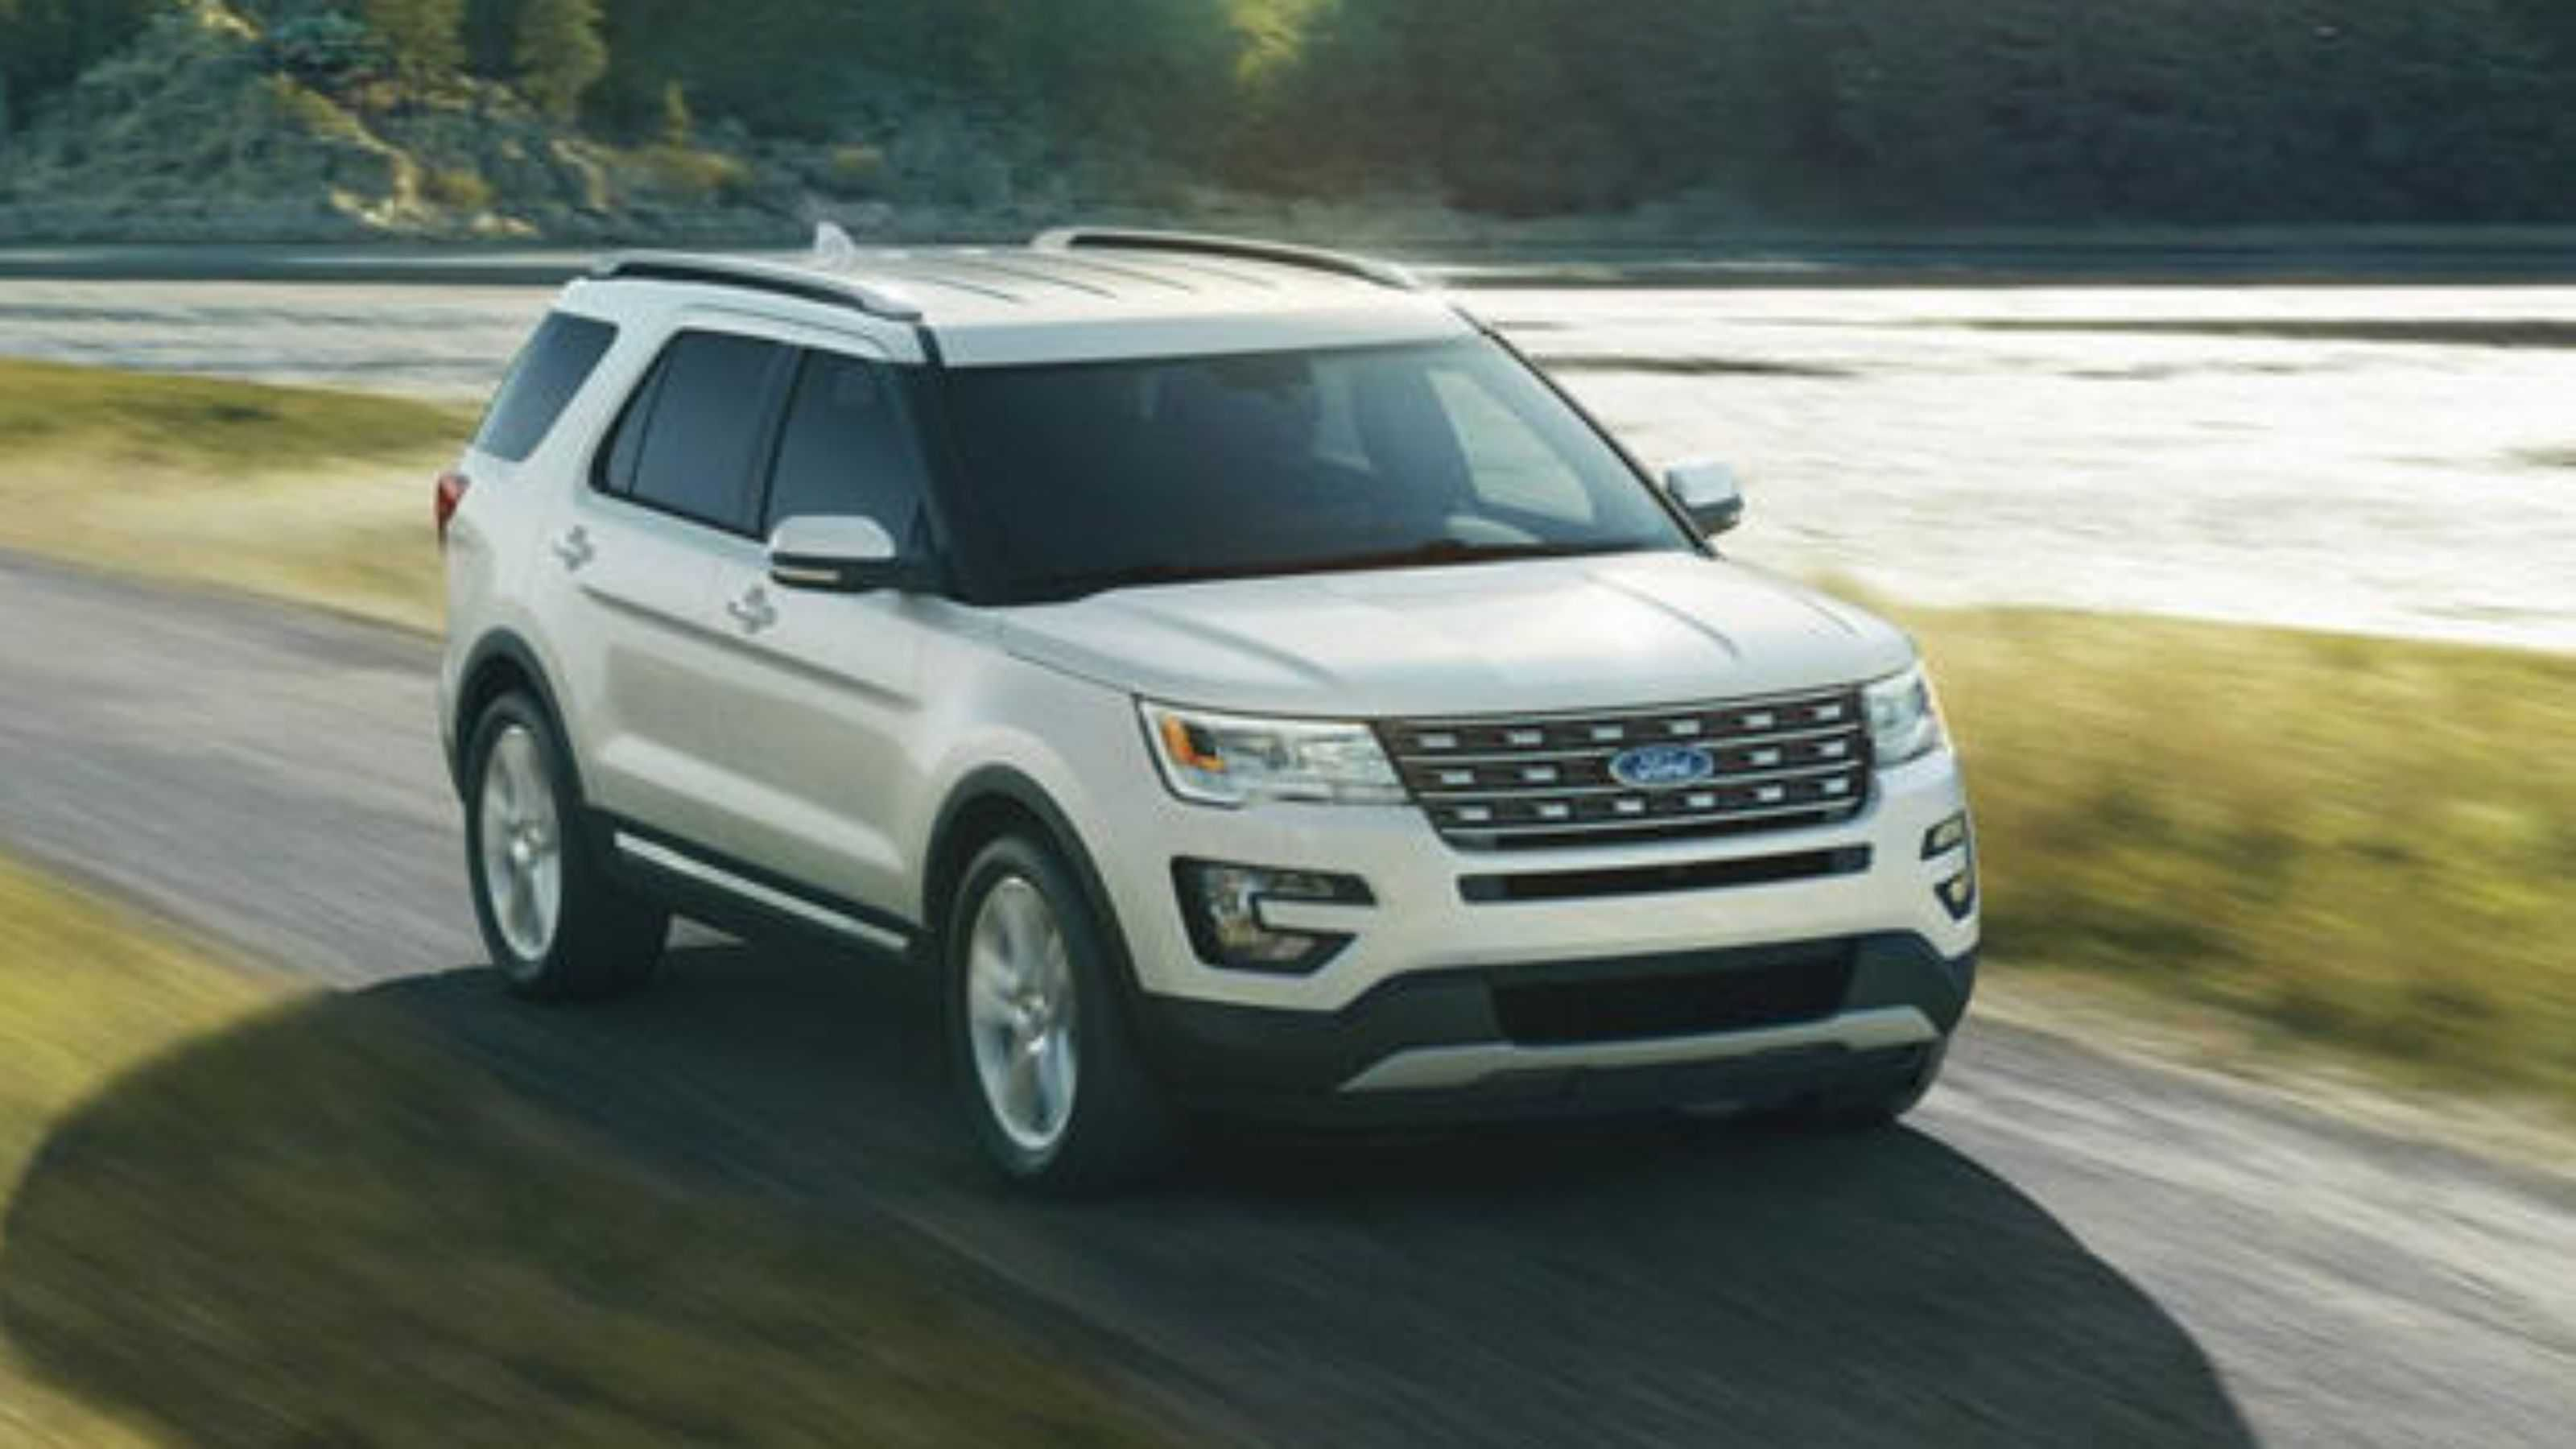 2018 Ford Explorer white Ford explorer, Super sport cars